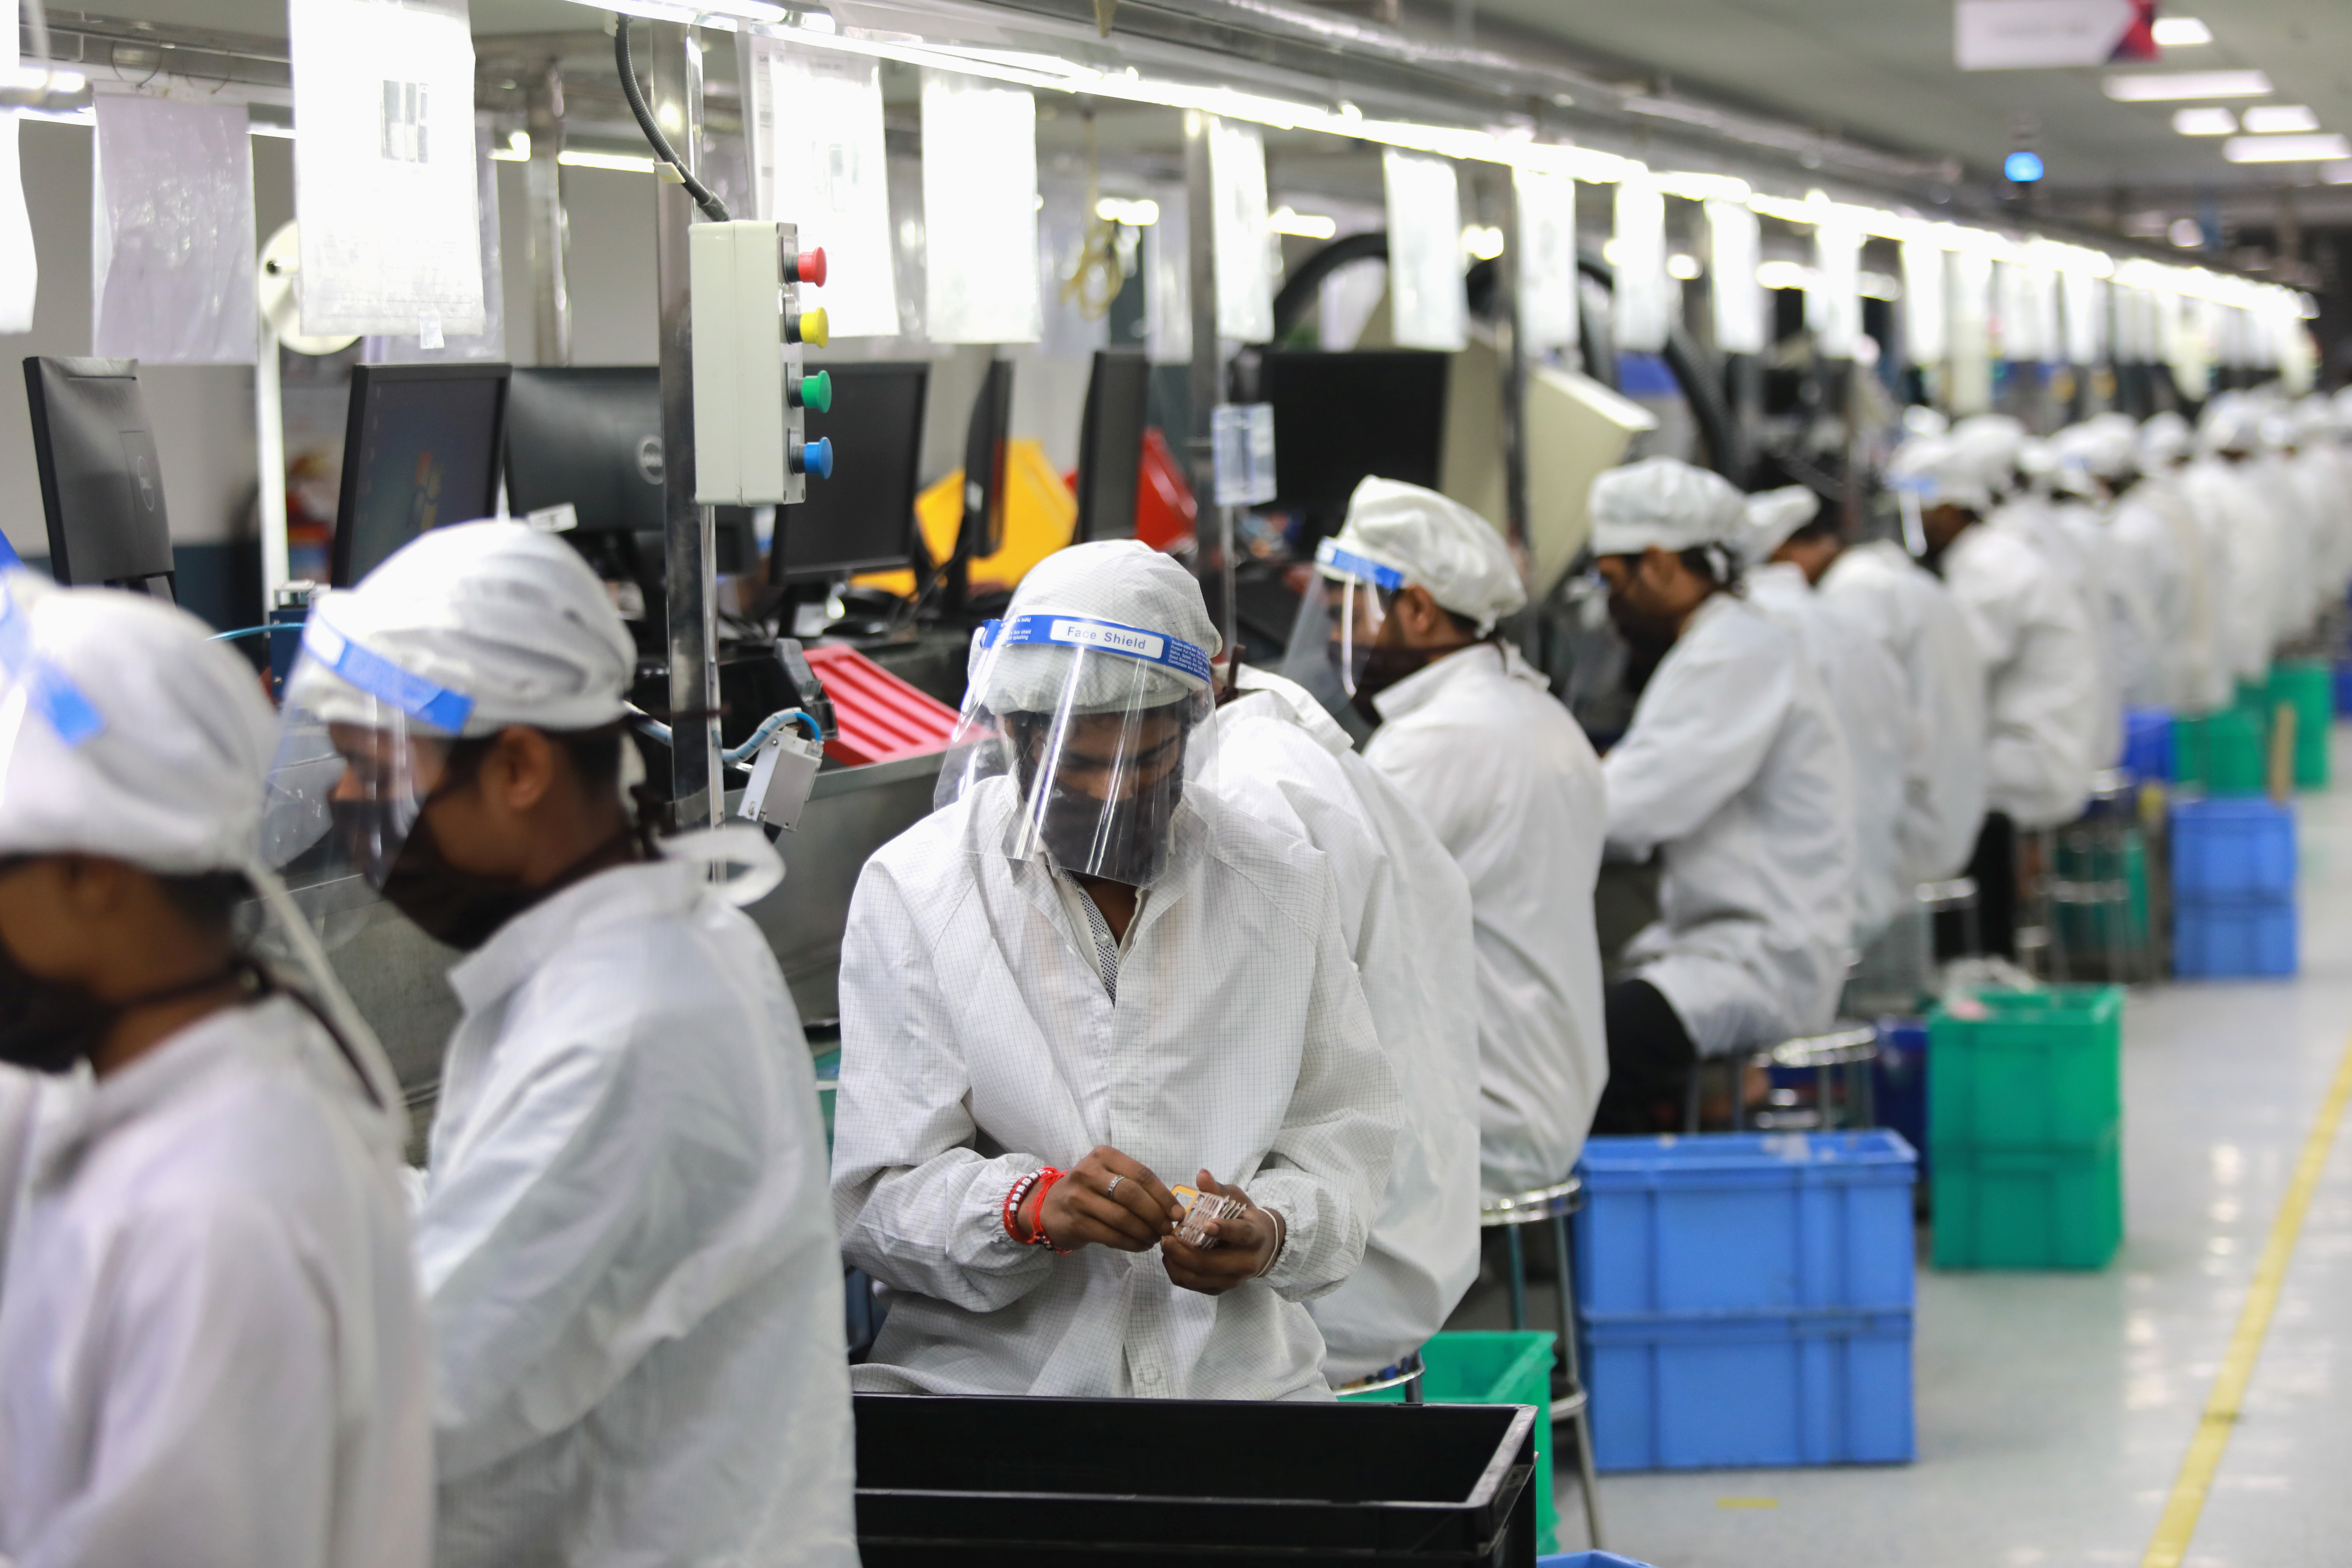 Workers wearing face shields work at an assembly line of mobile phones at Lava International Limited's manufacturing plant, after some restrictions were lifted during an extended nationwide lockdown to slow the spread of the coronavirus disease (COVID-19) in Noida, India, May 12, 2020. Picture taken  May 12, 2020. REUTERS/Anushree Fadnavis - RC2FNG903YU7